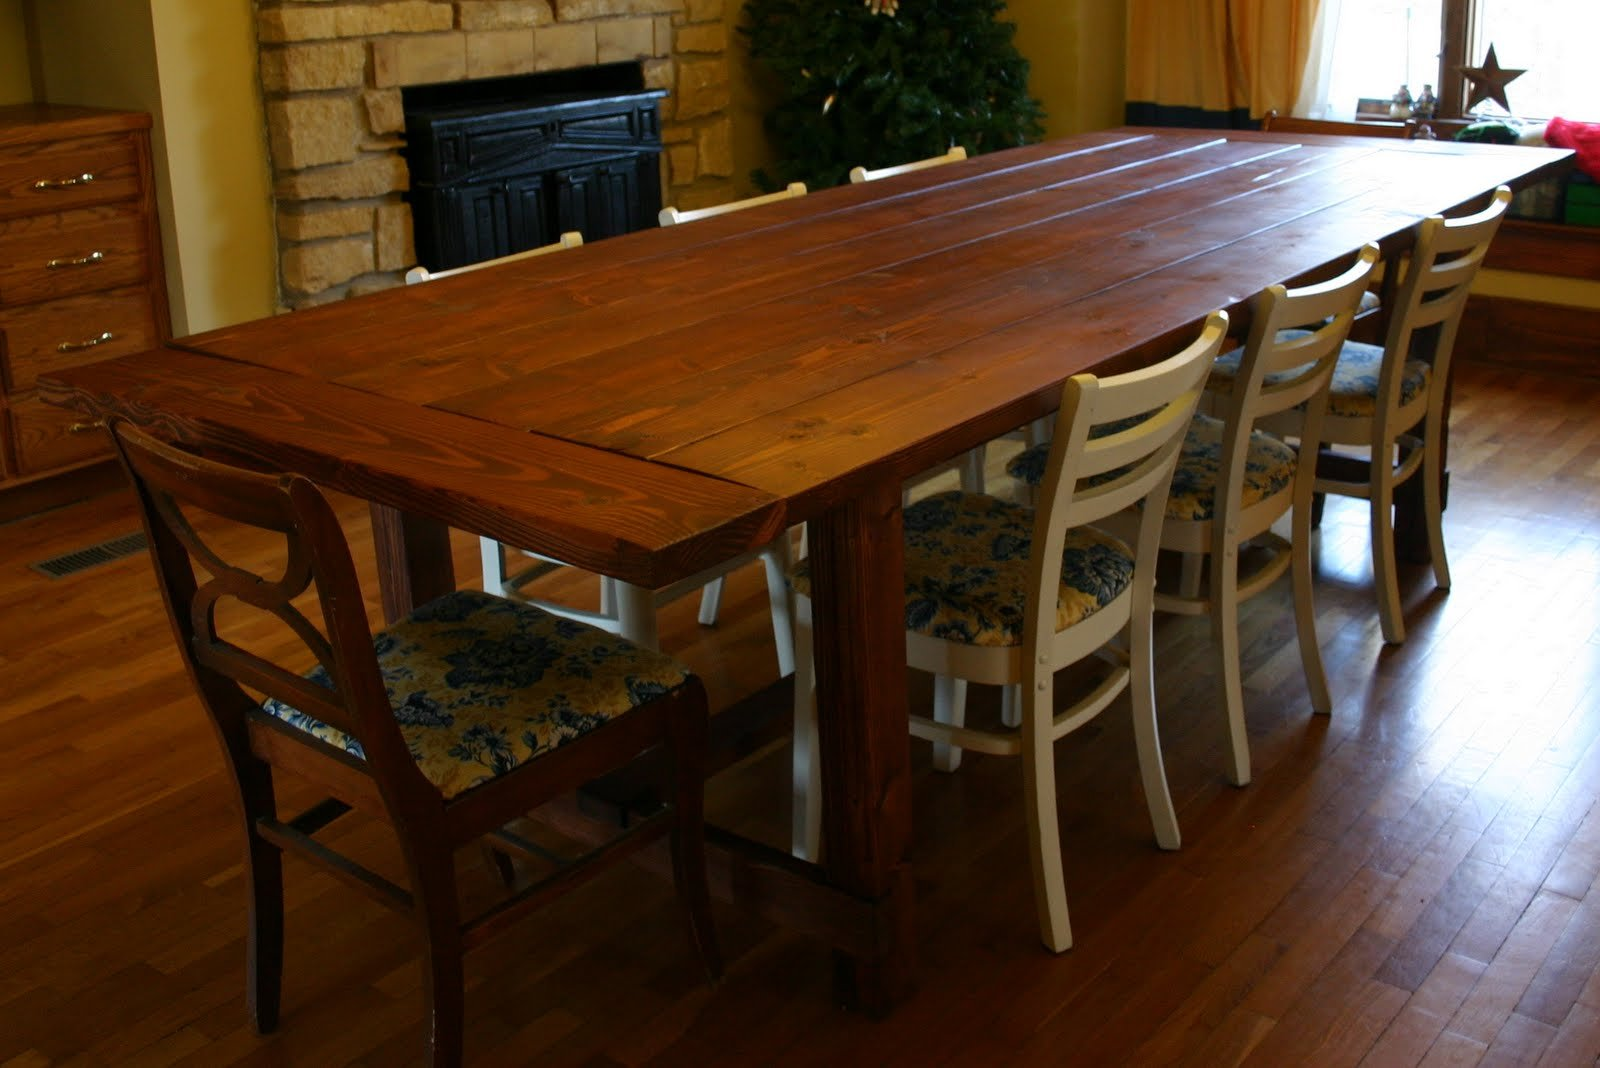 German jello salad rustic dining table i built from free for Kitchen table plans